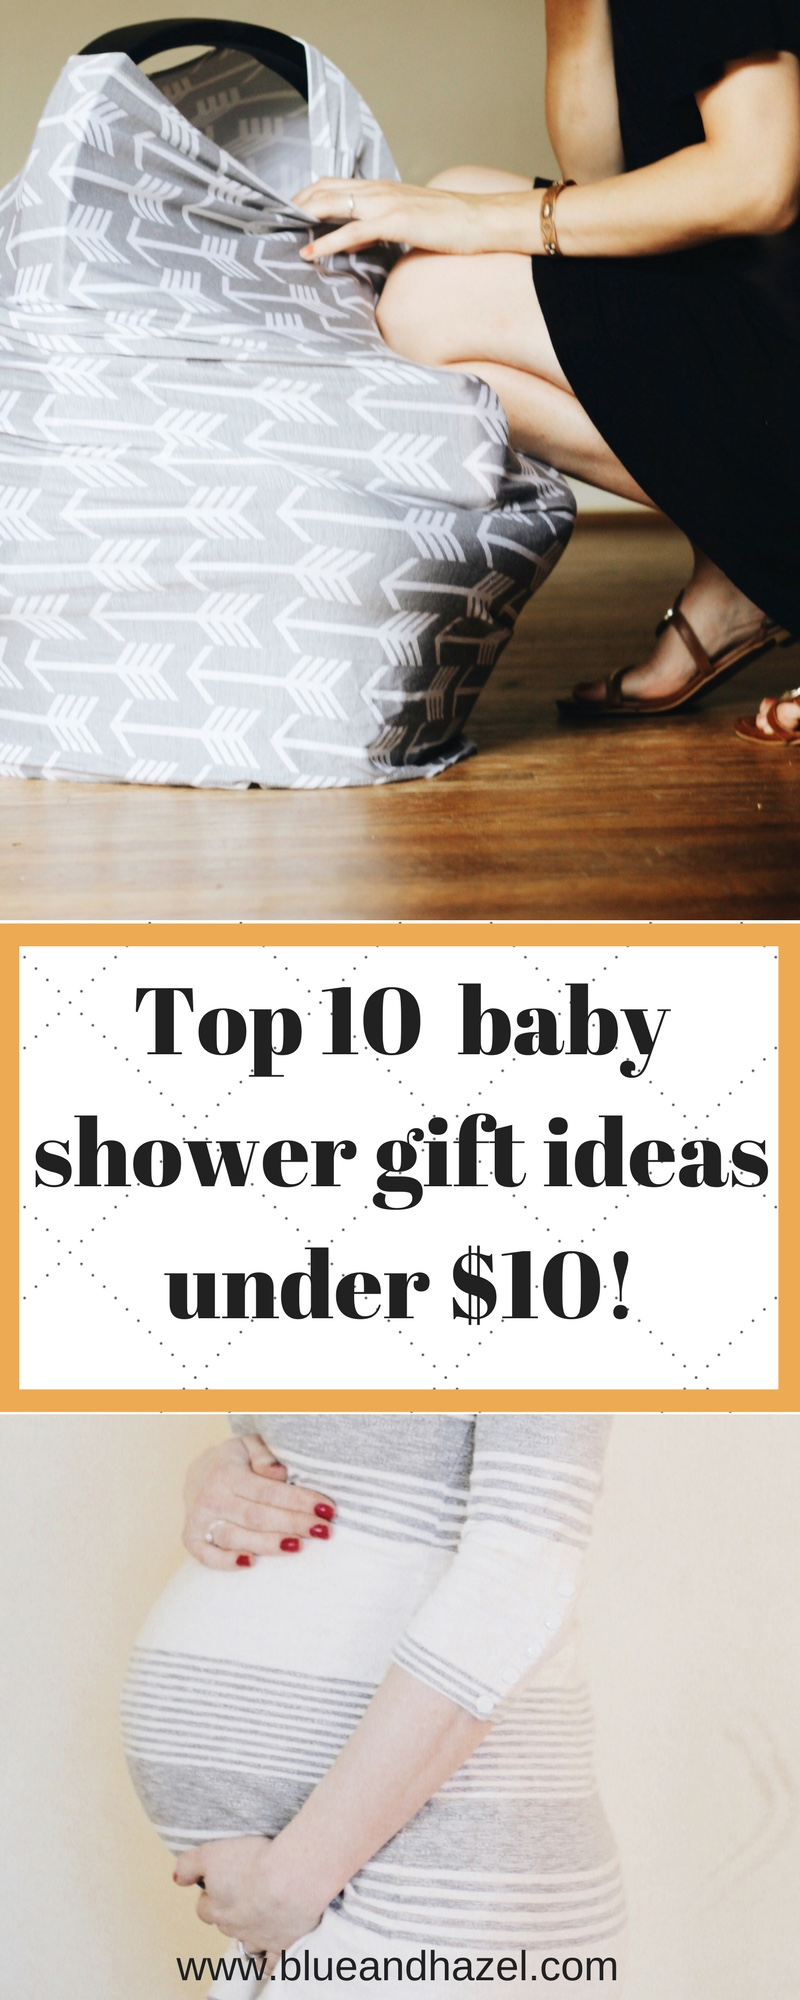 Baby Gift Ideas Under £10 : Top baby shower gift ideas under blue and hazel